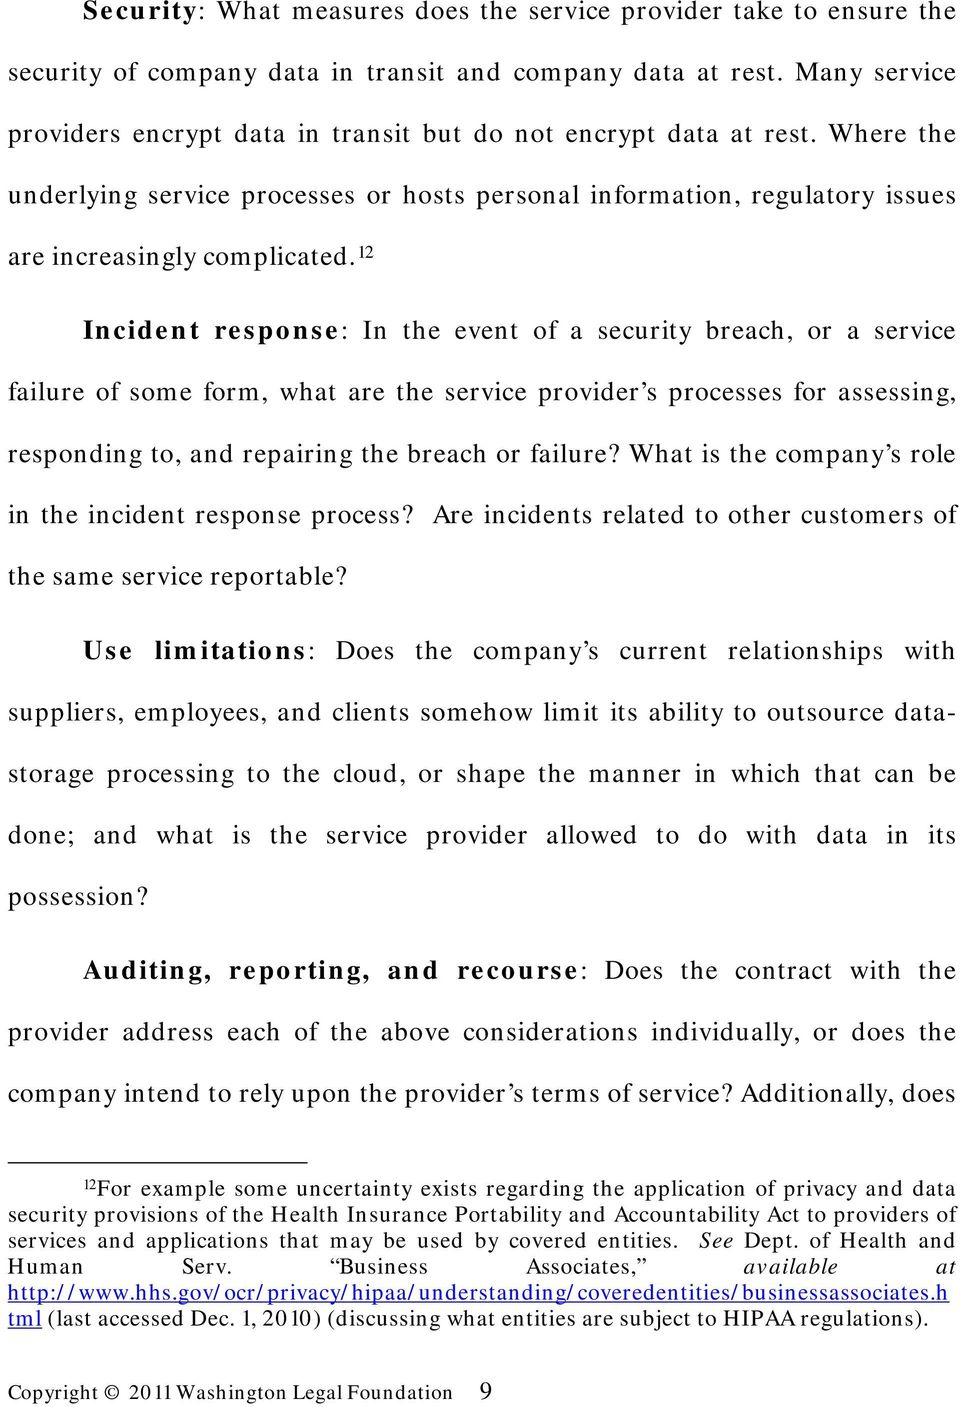 12 Incident response: In the event of a security breach, or a service failure of some form, what are the service provider s processes for assessing, responding to, and repairing the breach or failure?